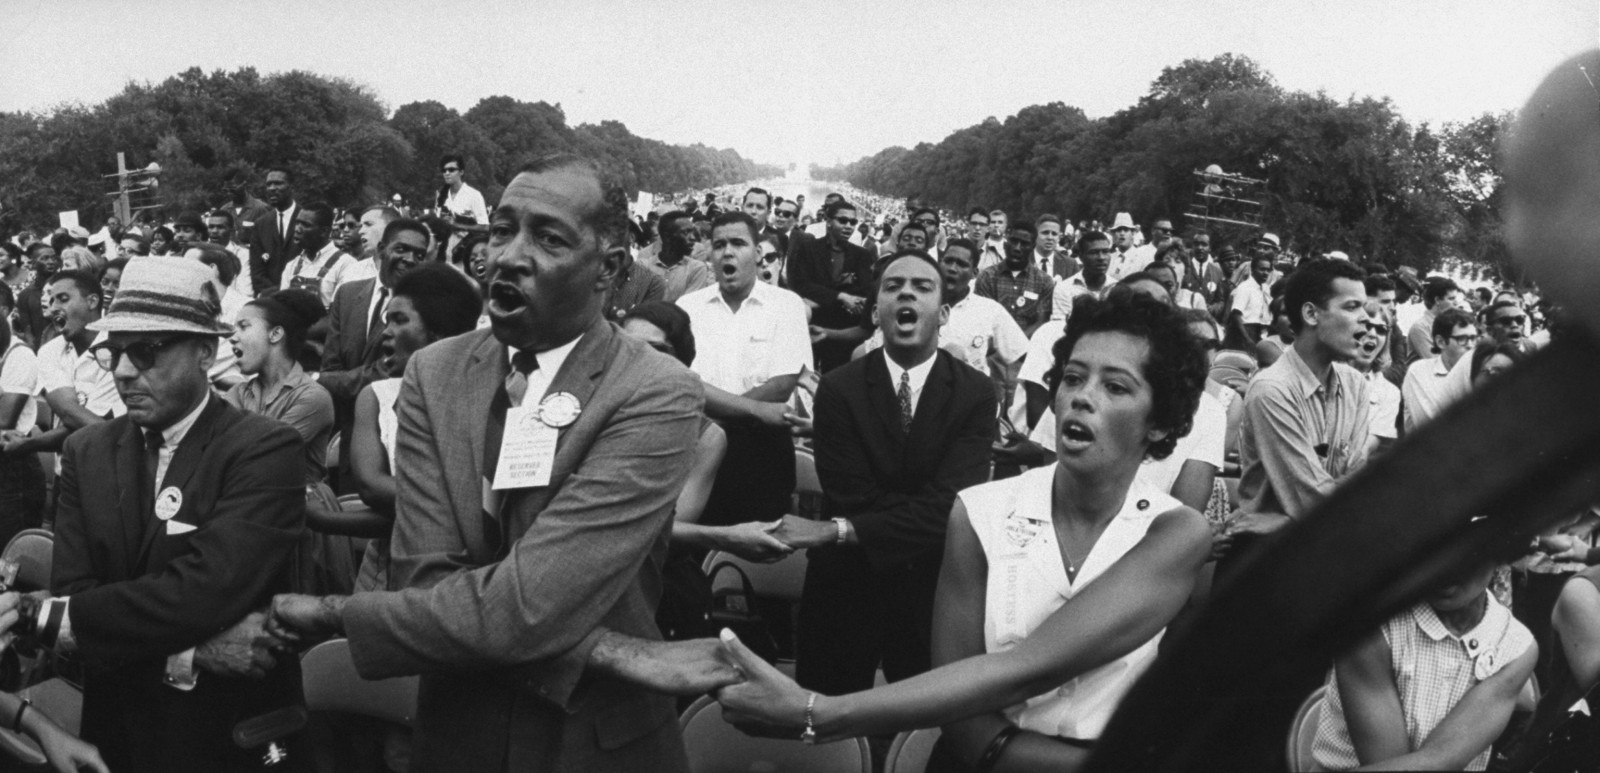 The August 24 March On Washington Why We Need A New Civil